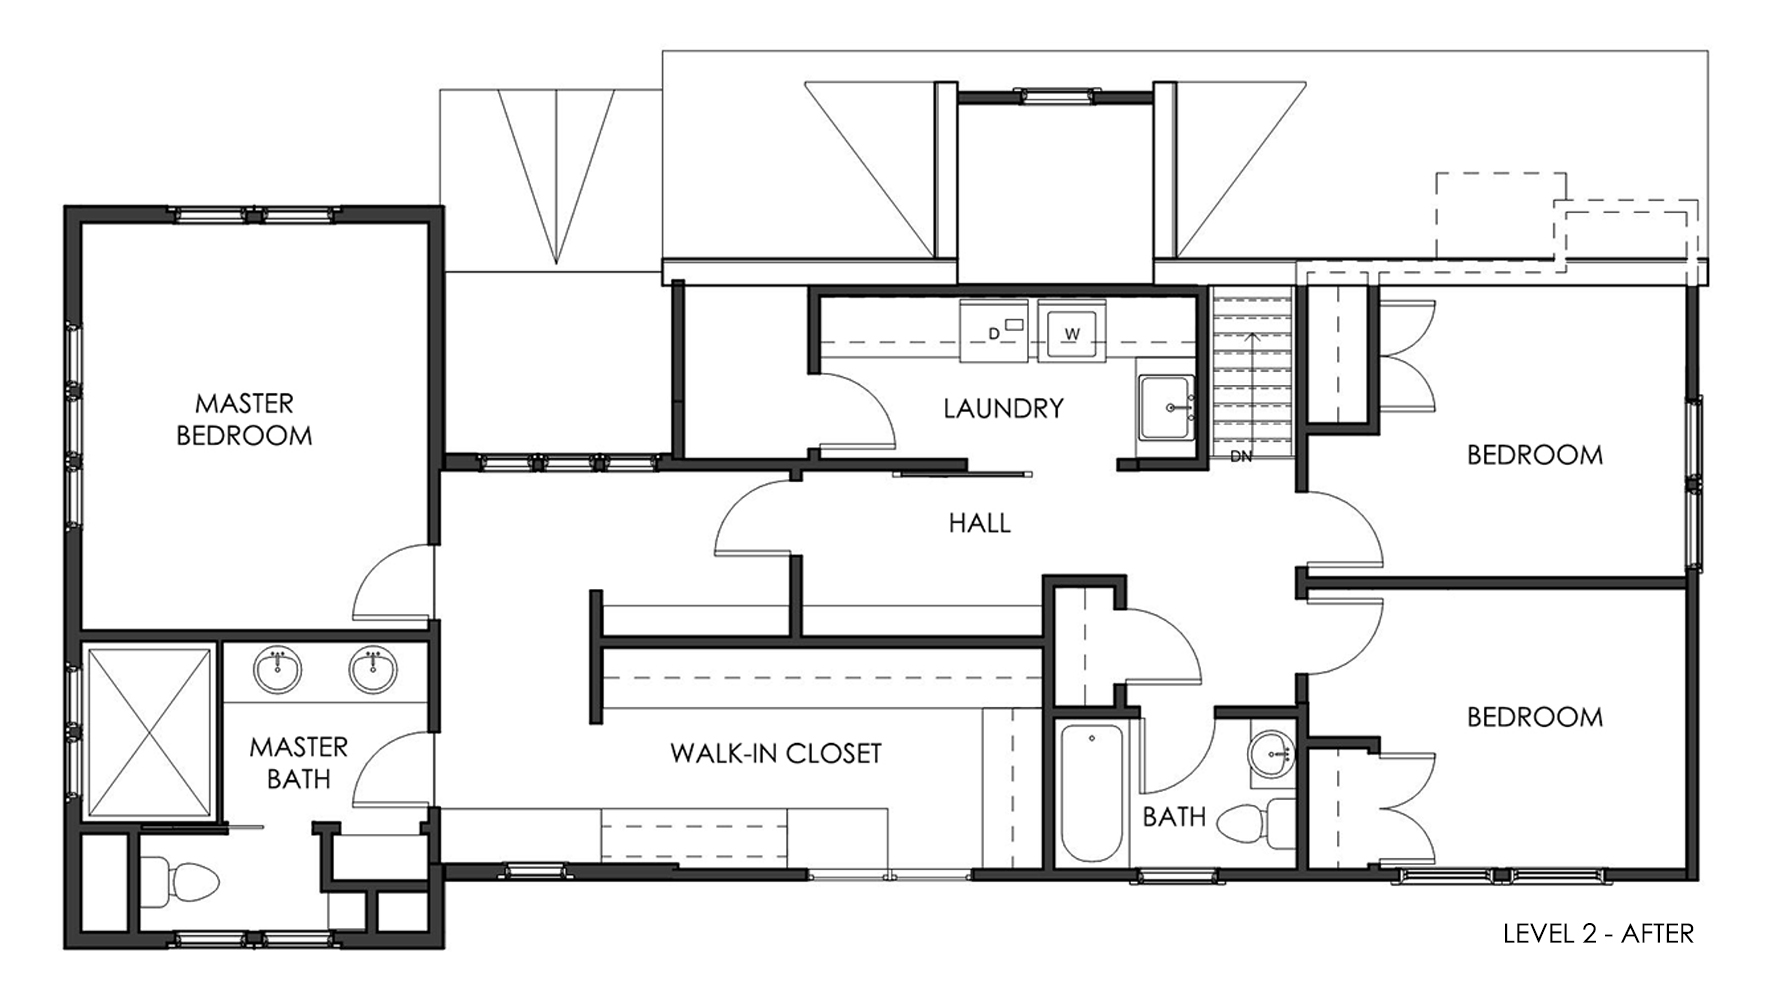 AFTER_South End House_Level 2.jpg